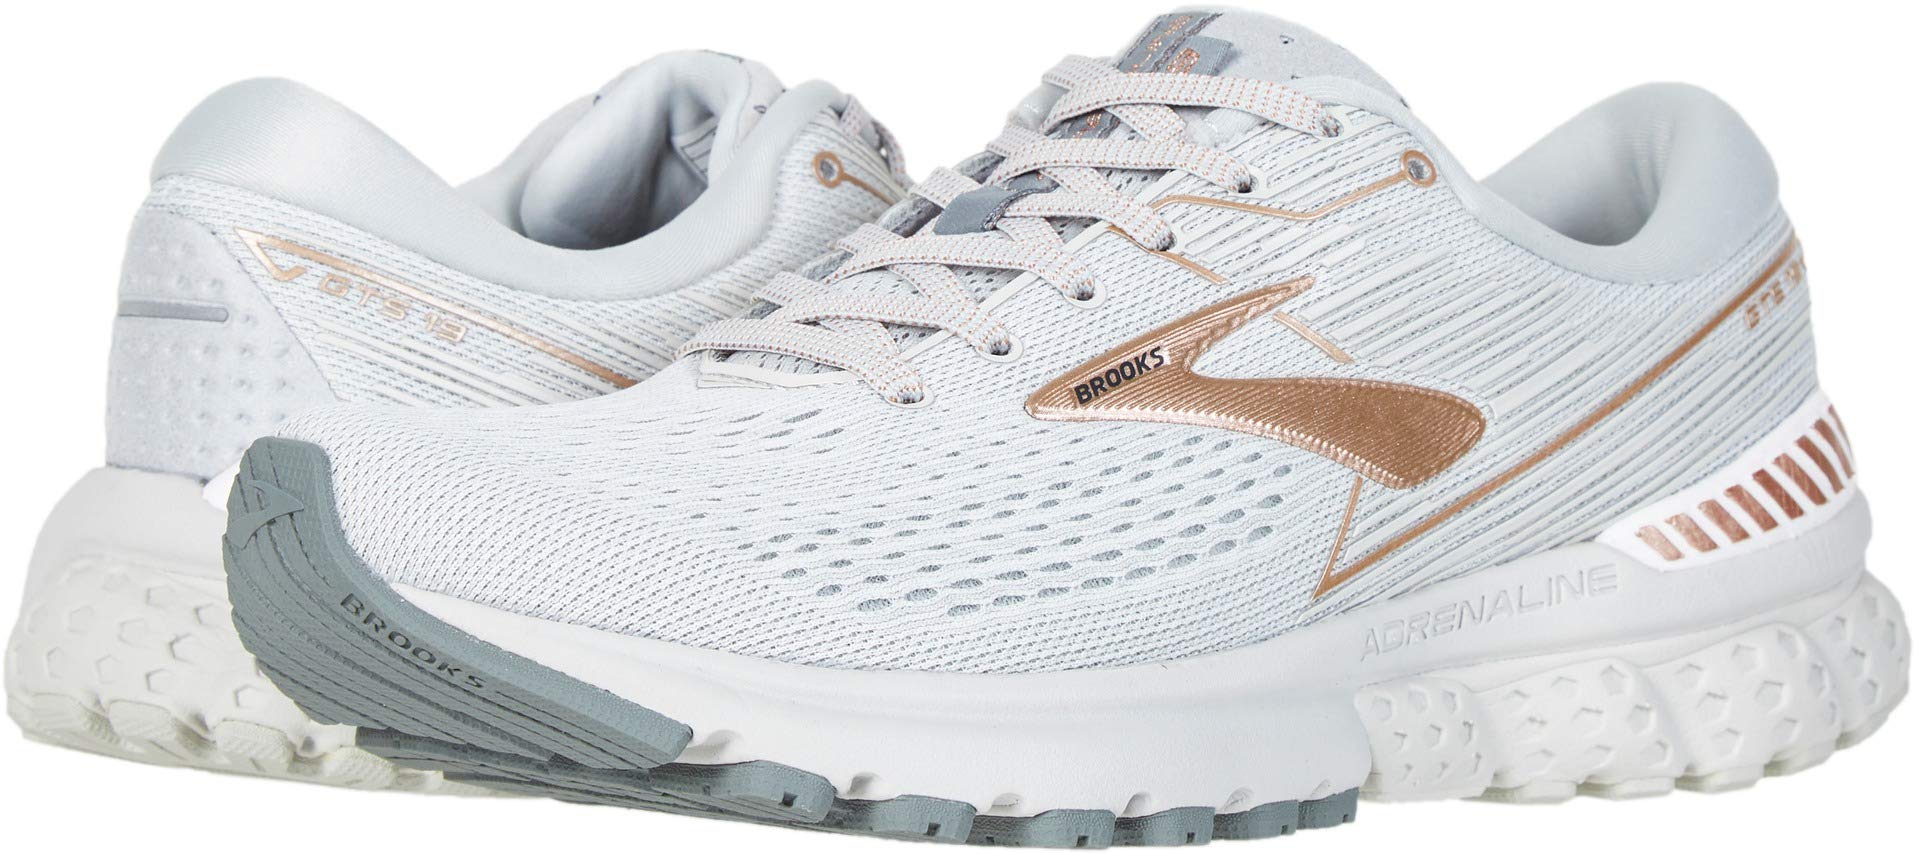 Brooks Women's Adrenaline GTS 19 Grey/Copper/White 12 B US by Brooks